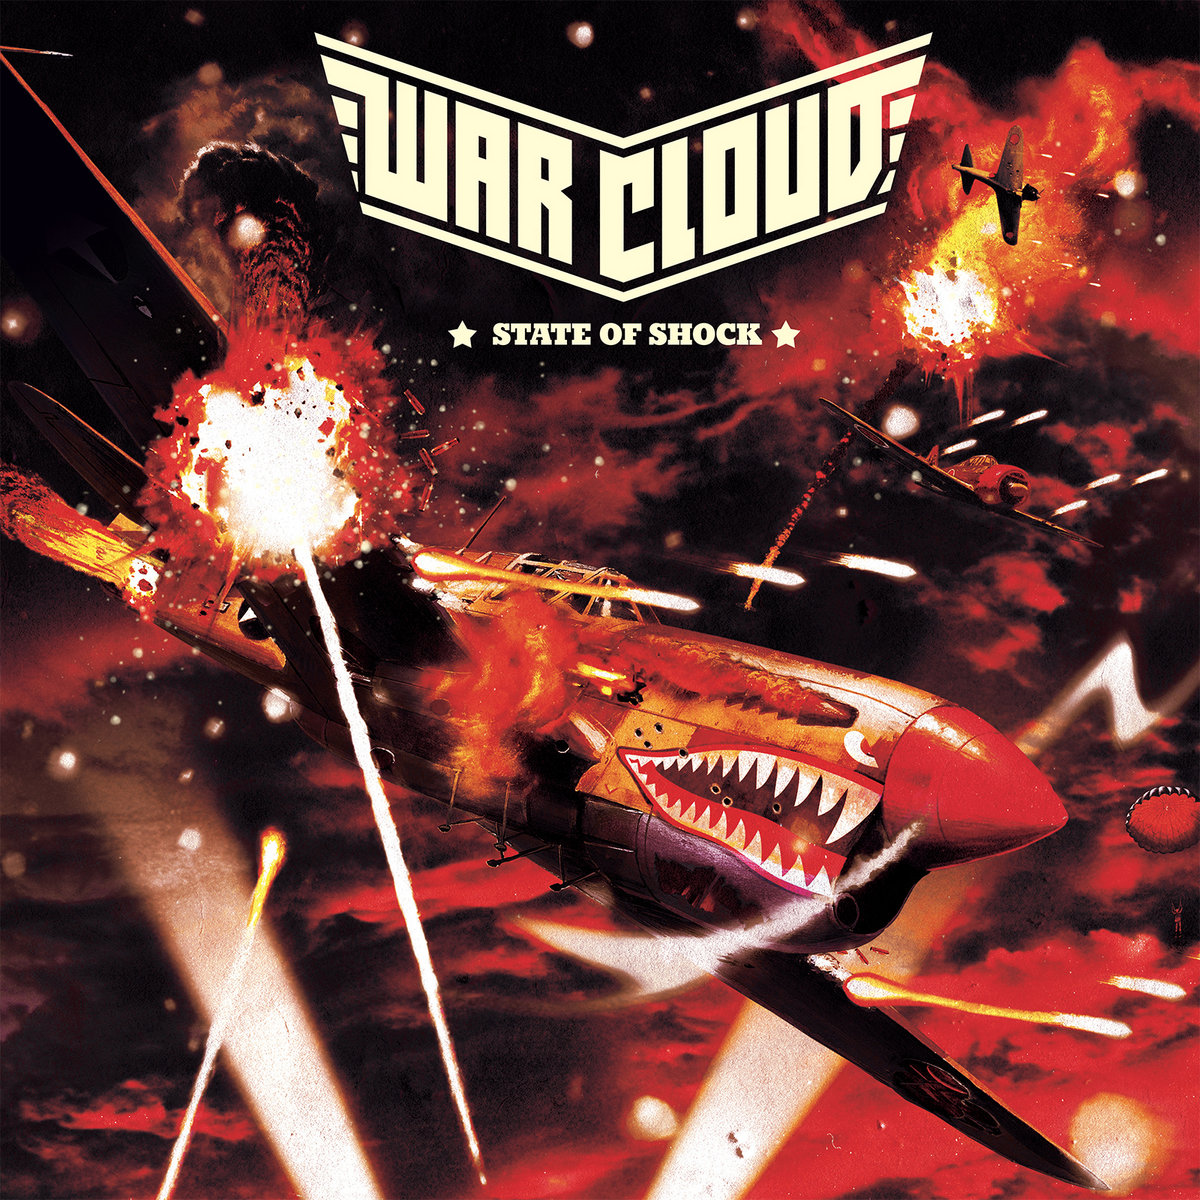 Image result for war cloud state of shock